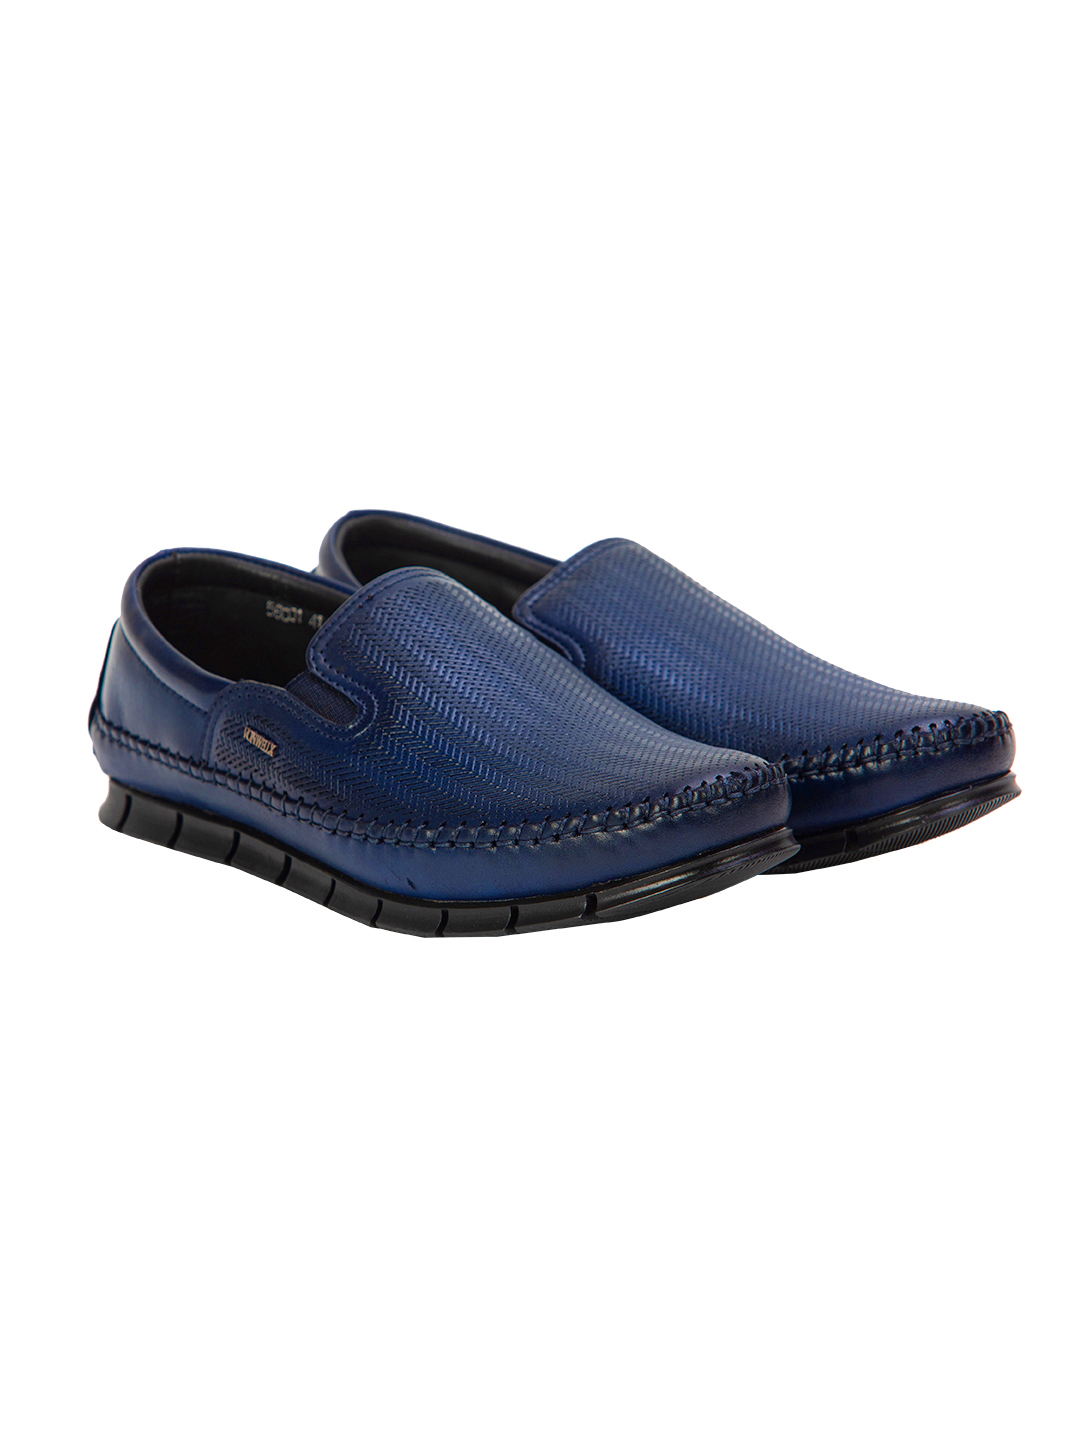 Buy Von Wellx Germany Comfort Fad Casual Blue Shoes Online in Pune